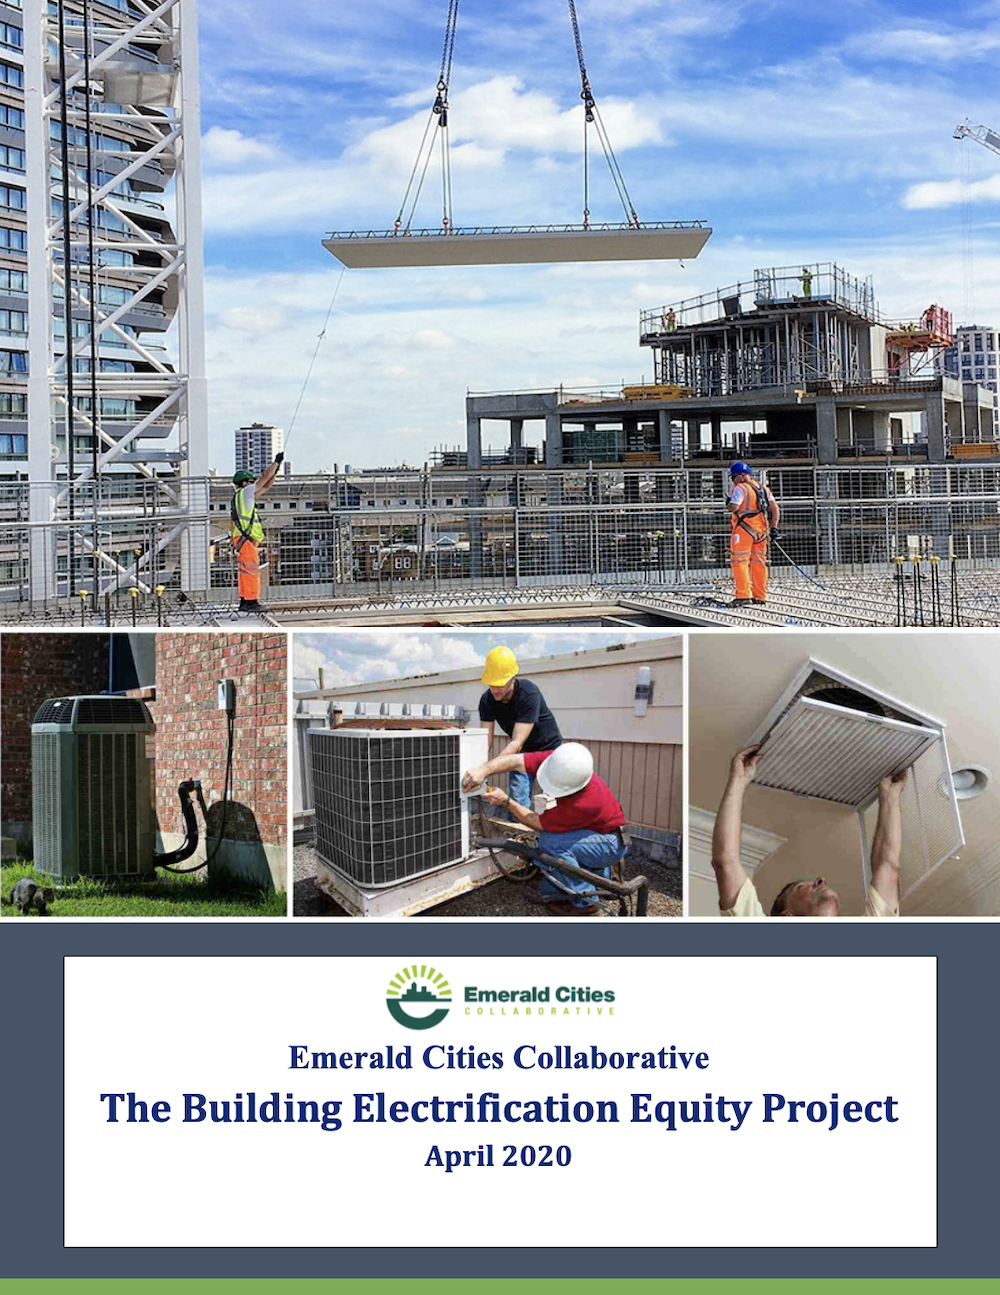 The Building Electrification Equity Project